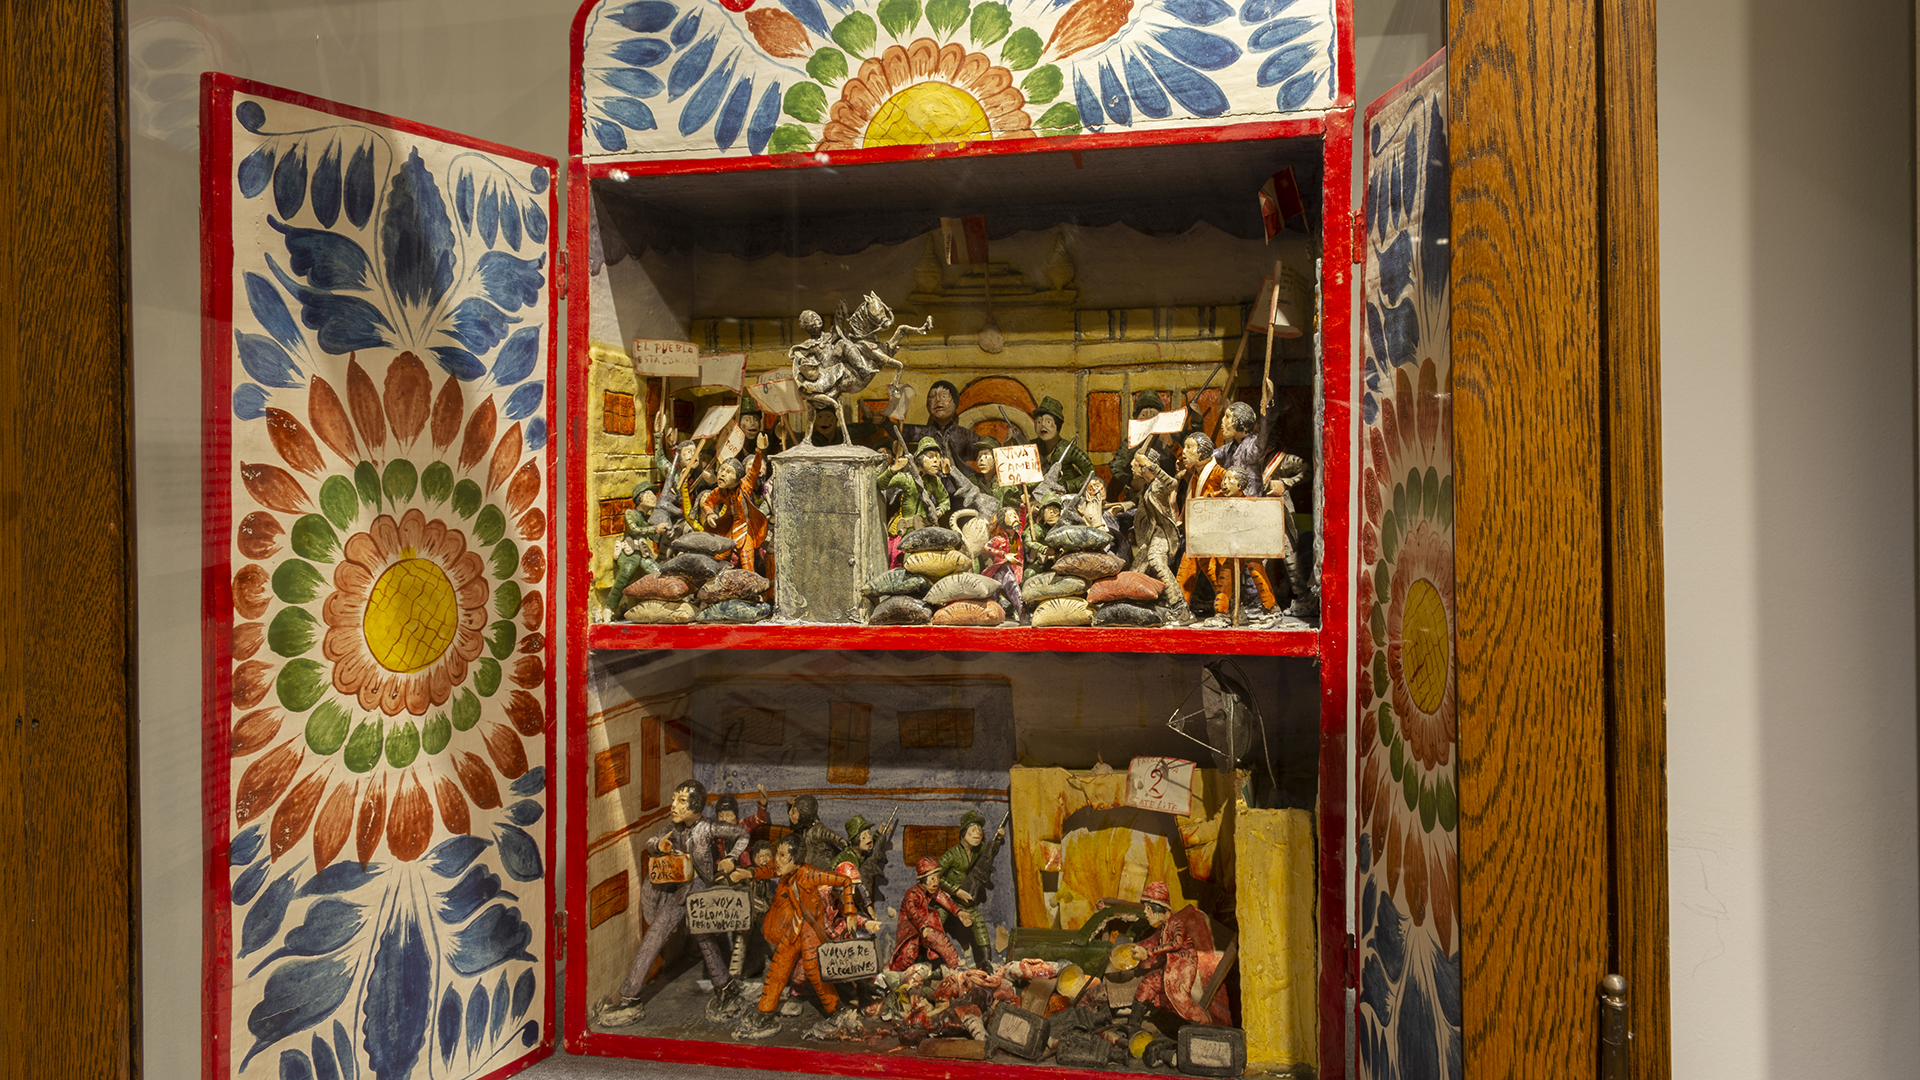 New Artifact on Display: Peruvian Retablo from CLACS